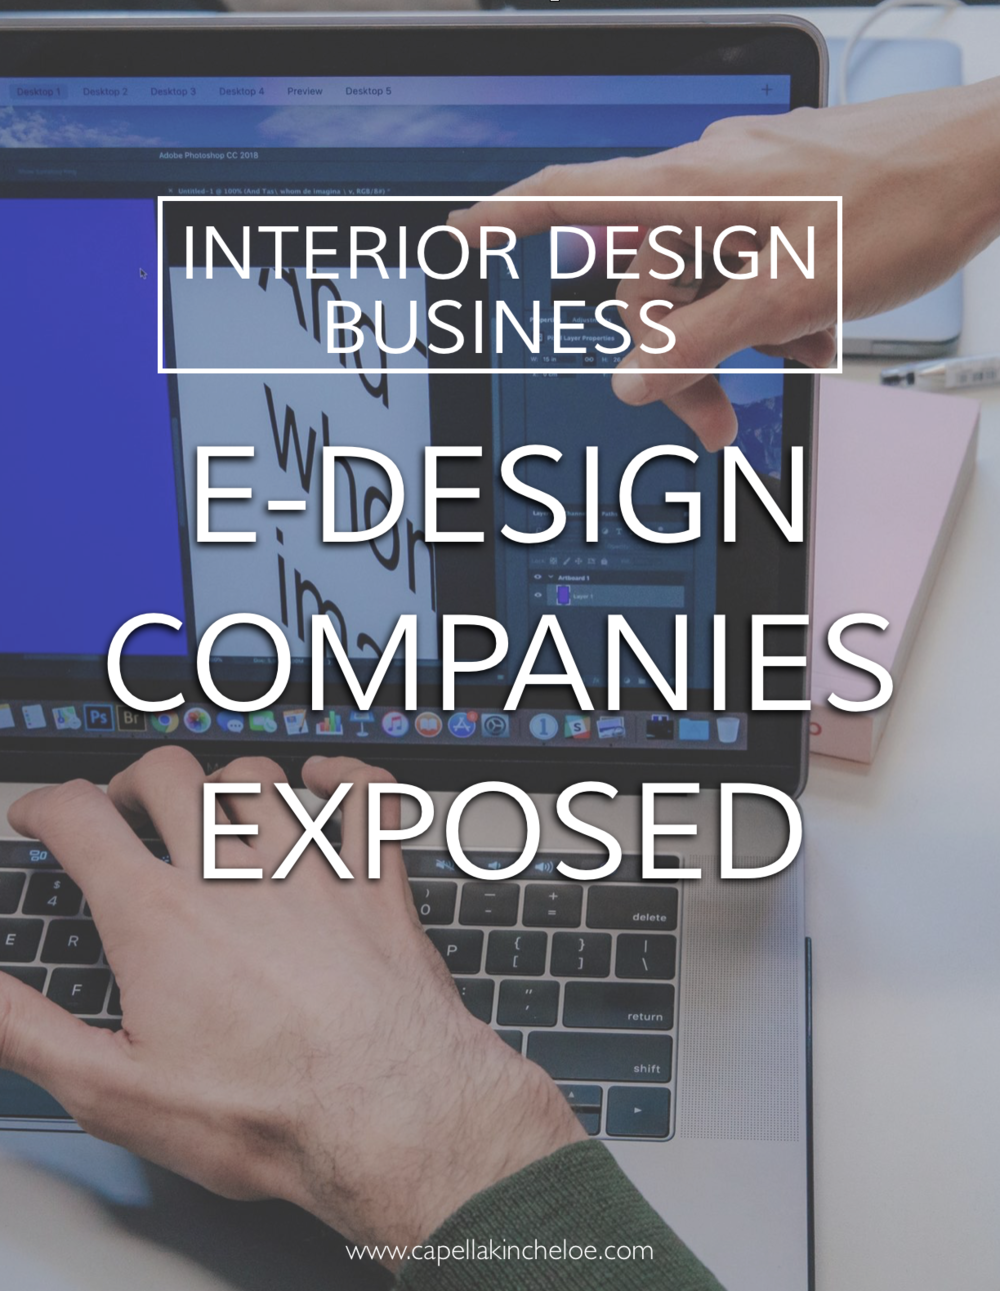 Ever wonder what it's like to work with an online design company? Real designers share their experiences. #interiordesignbusiness #cktradesecrets #capellakincheloe #onlineinteriordesign #edesign